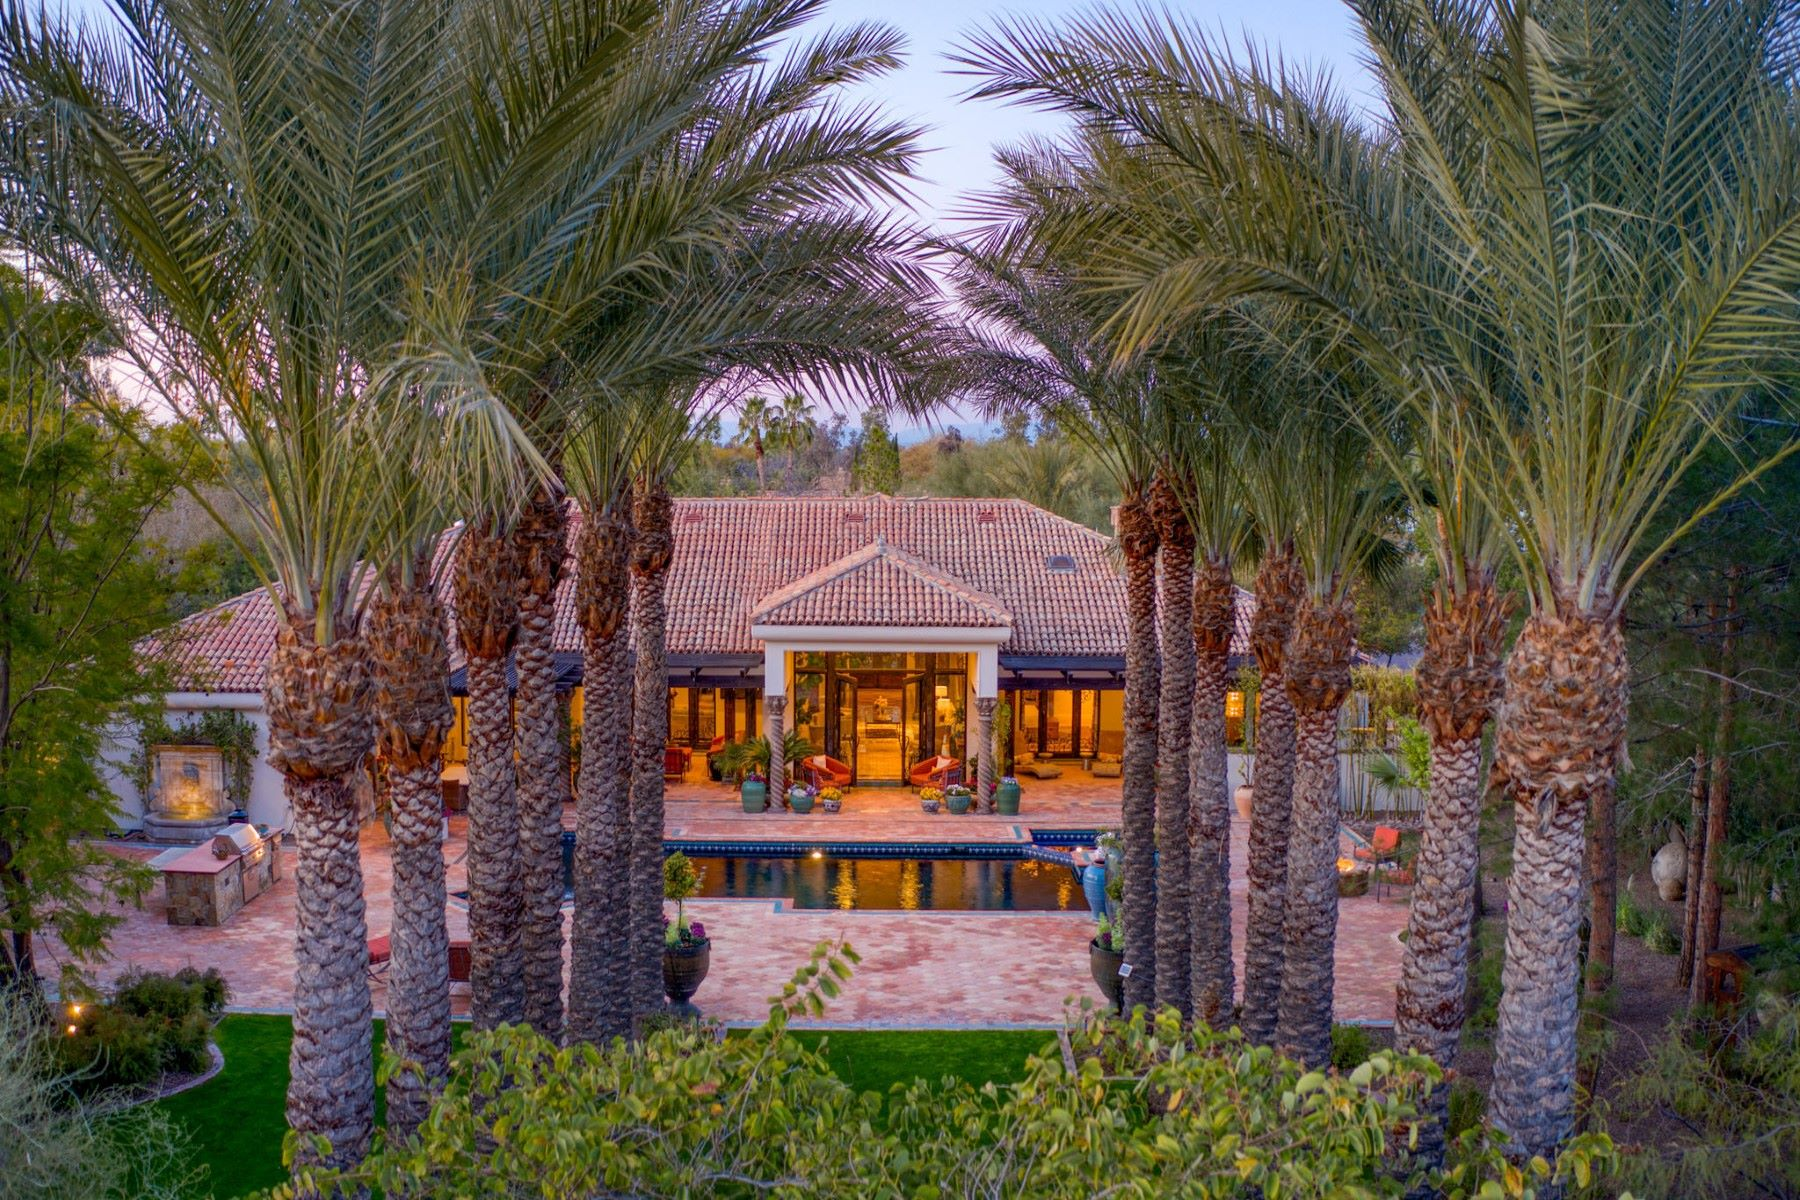 Property for Sale at 6955 E PARADISE RANCH RD, Paradise Valley, Arizona 85253 United States